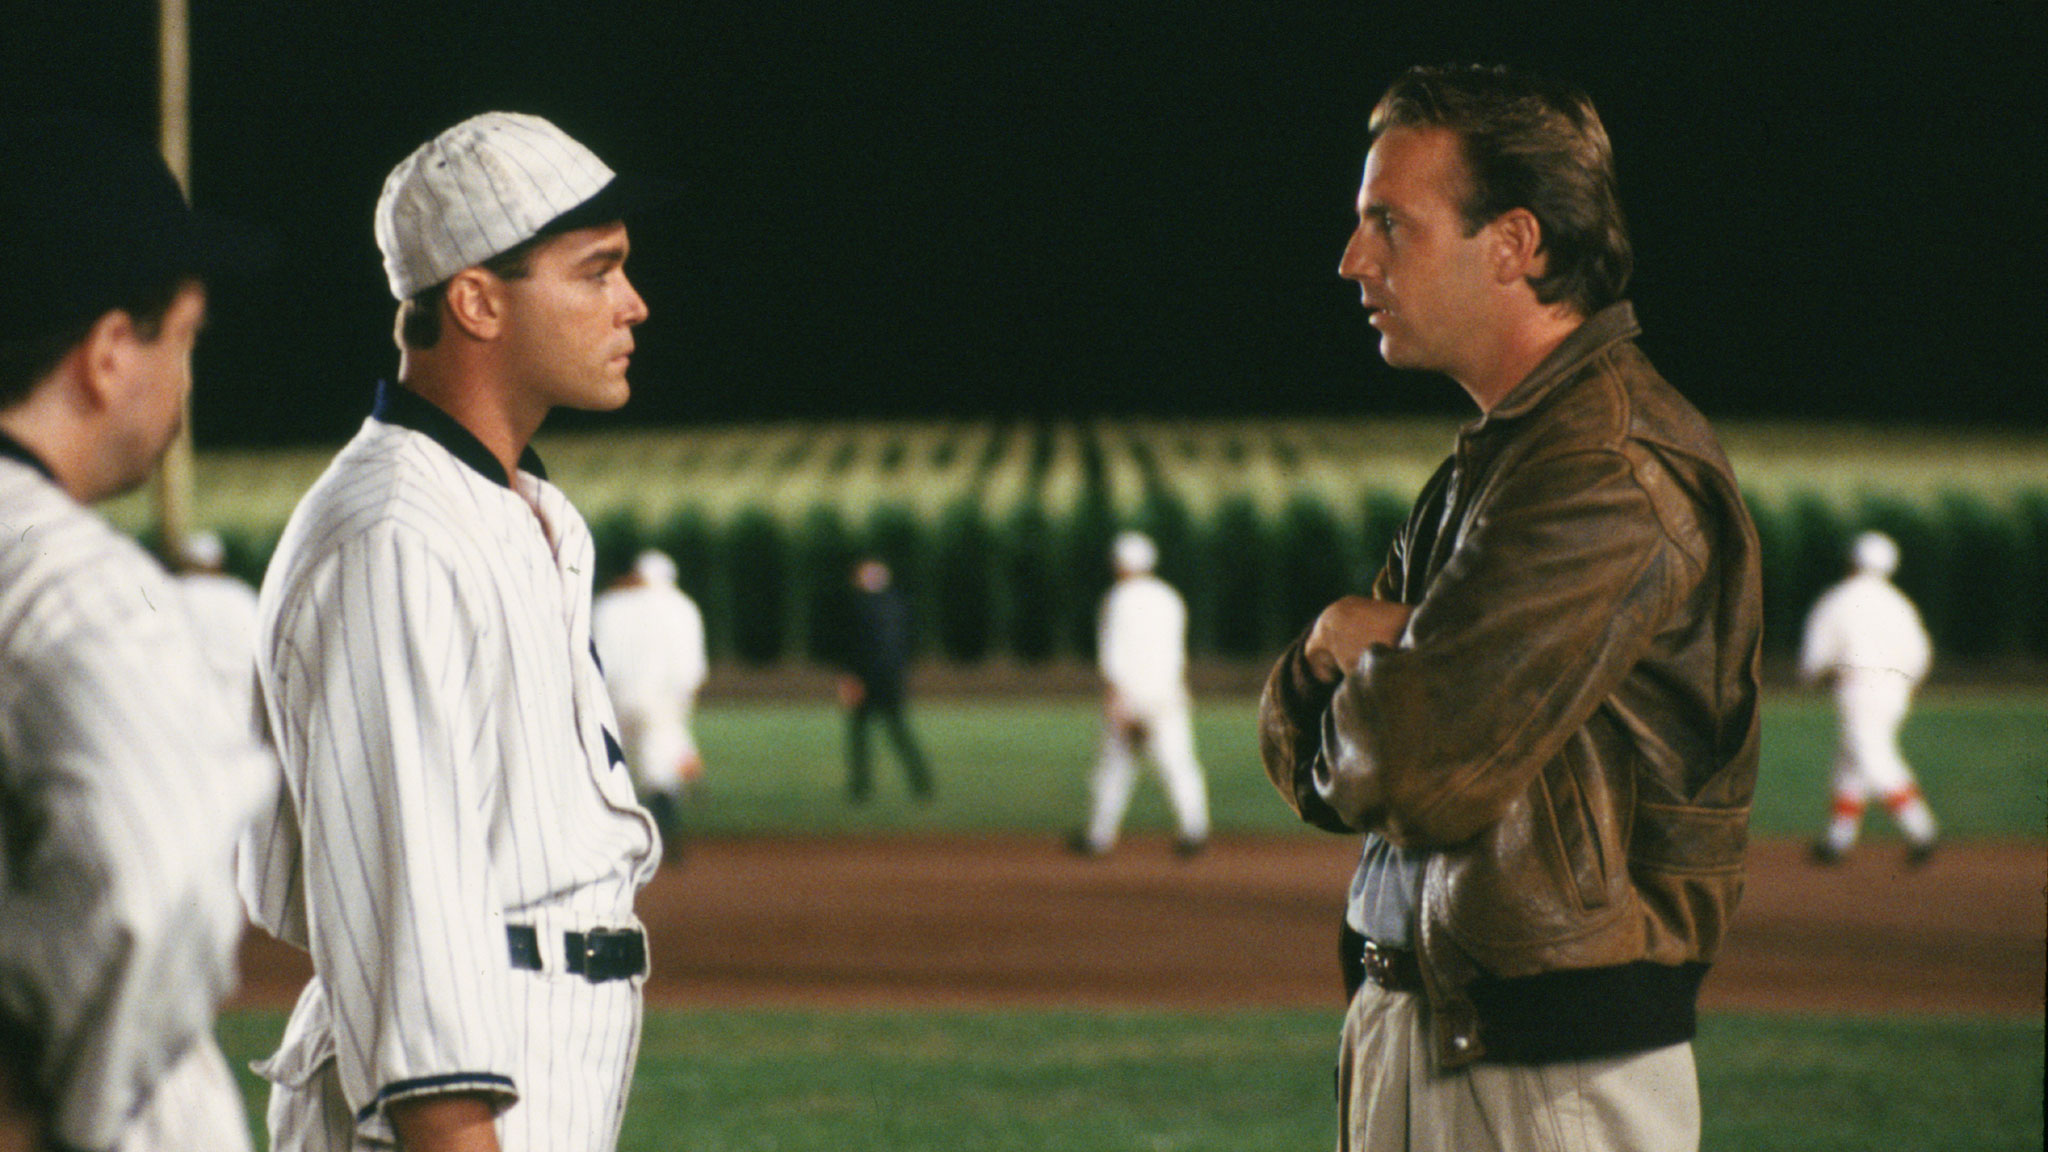 Ray Liotta and Kevin Costner - Field of Dreams